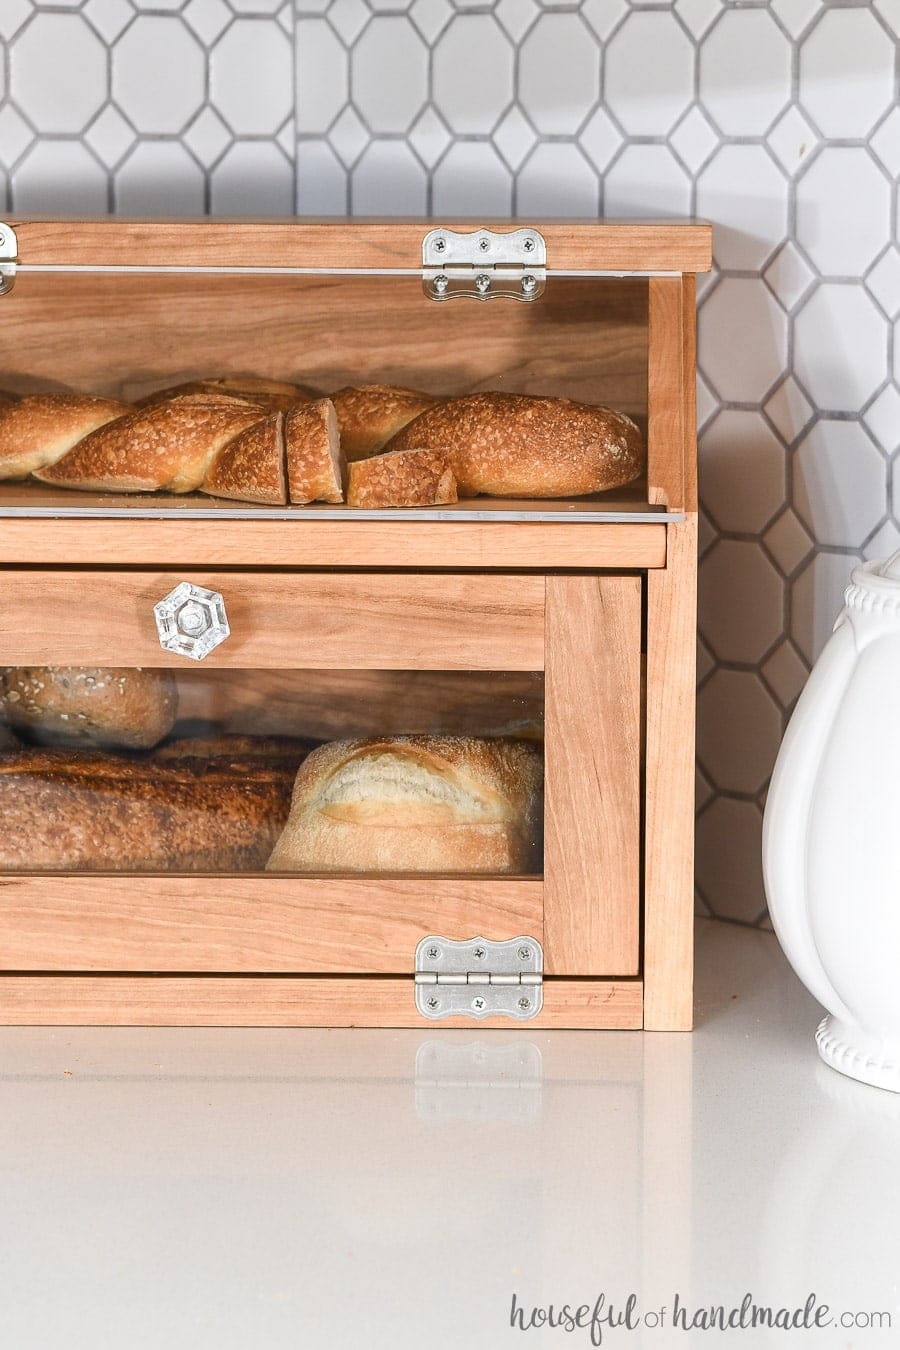 Close up view of the DIY bread box full of bread on the kitchen counter.